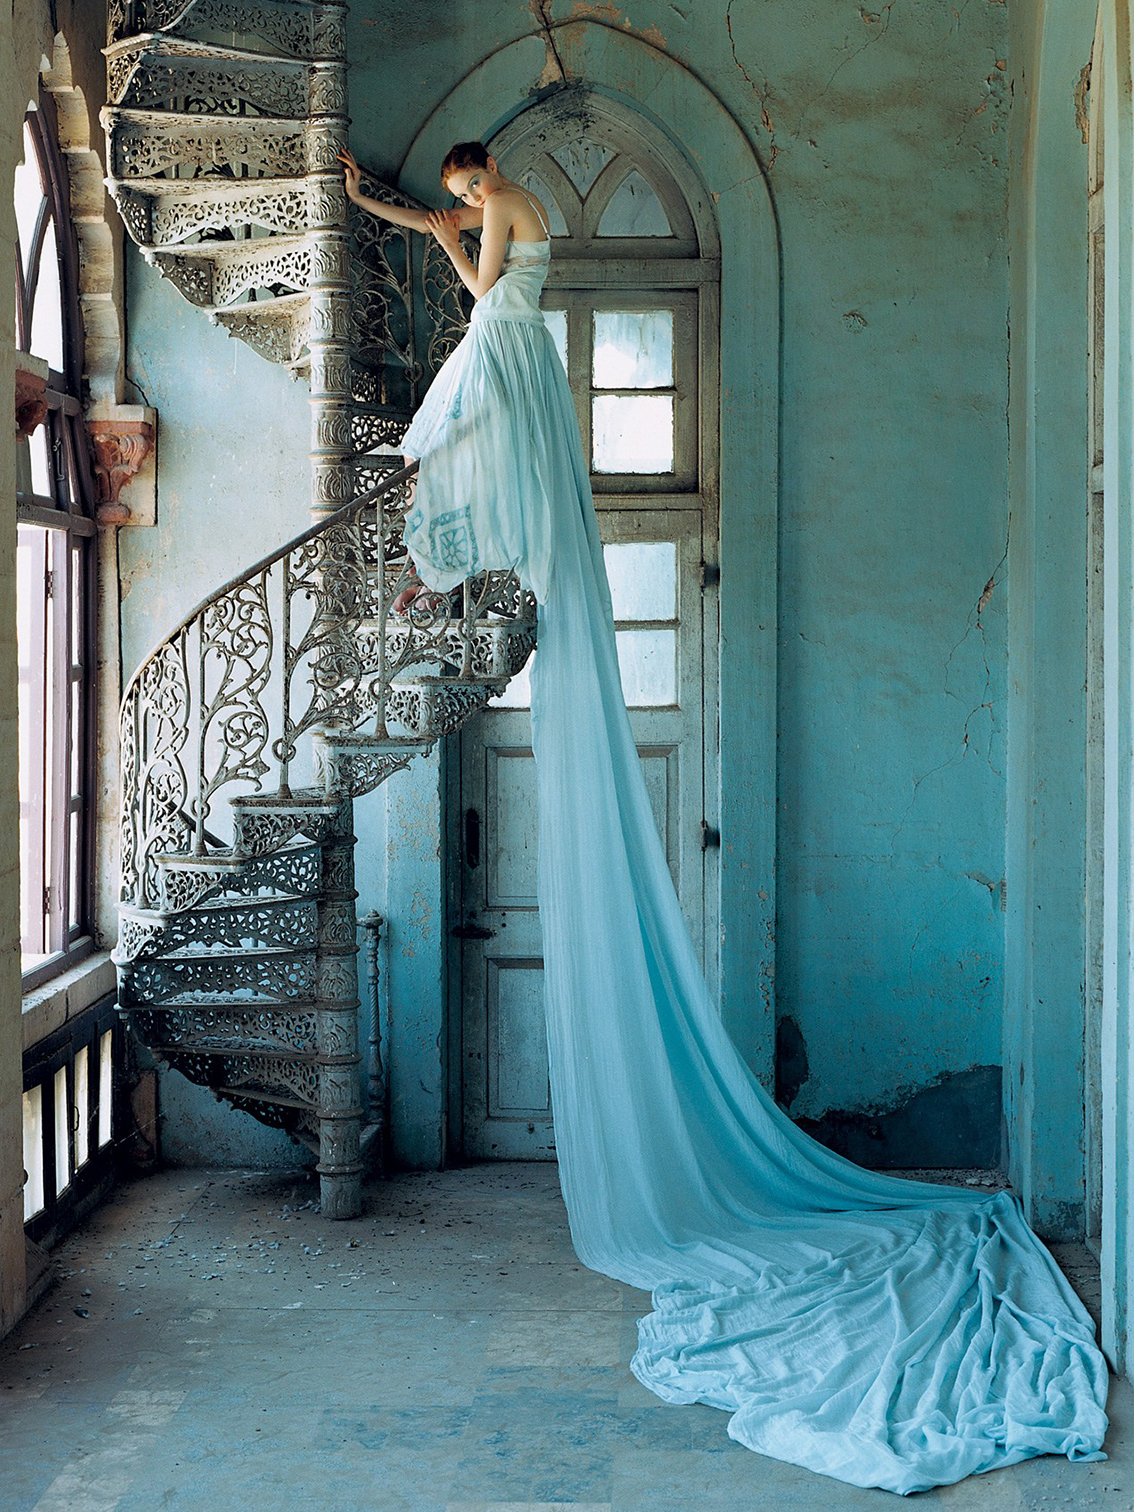 Lily Cole by Tim Walker, VOGUE UK, 2005